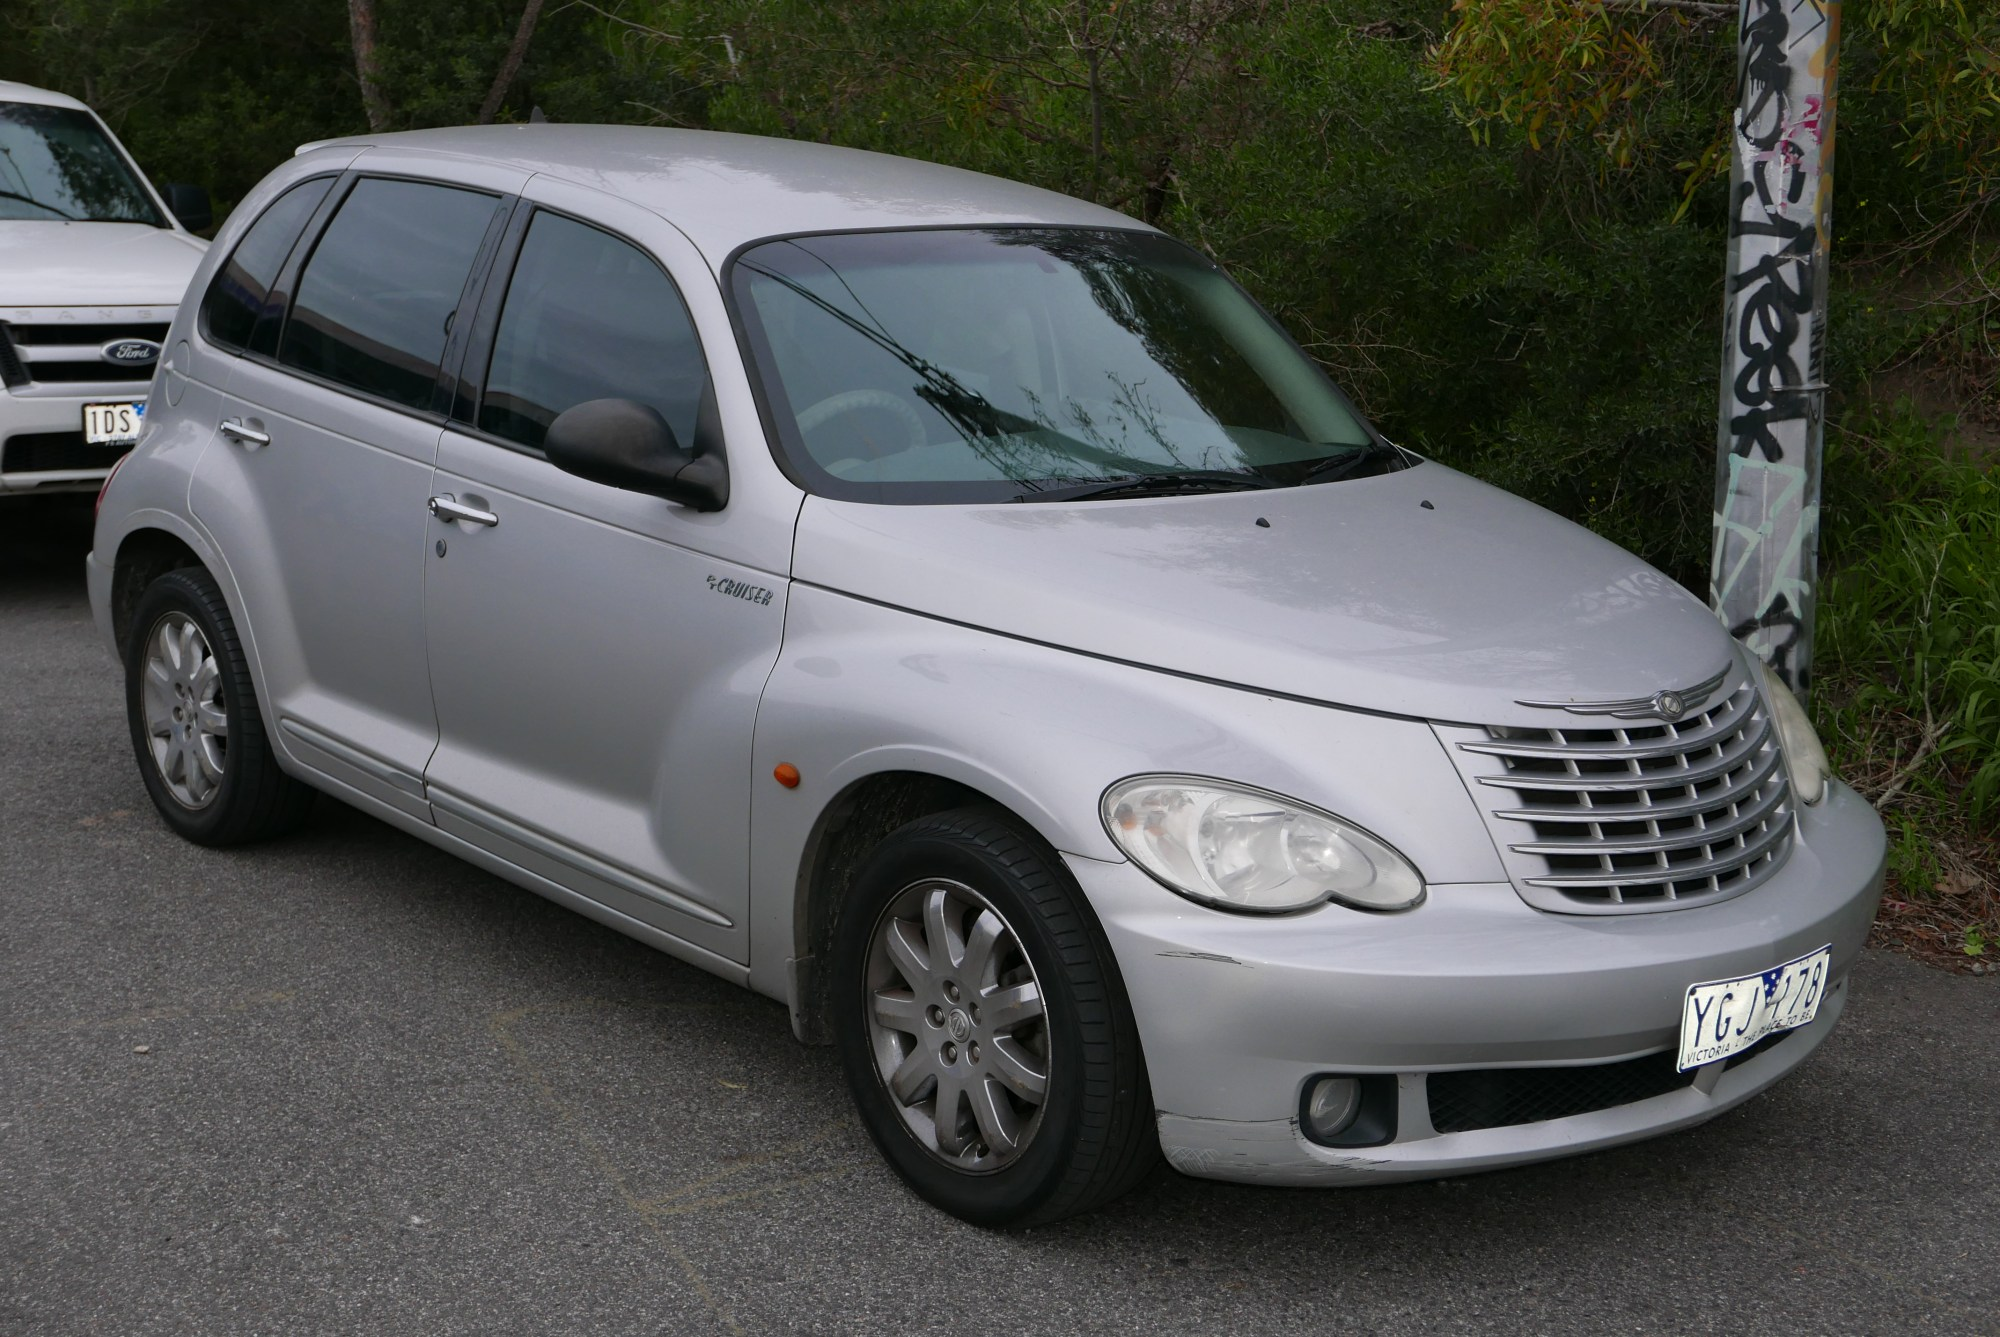 06 Pt Cruiser Fuse Box Location -  Aztek Fuse Box on